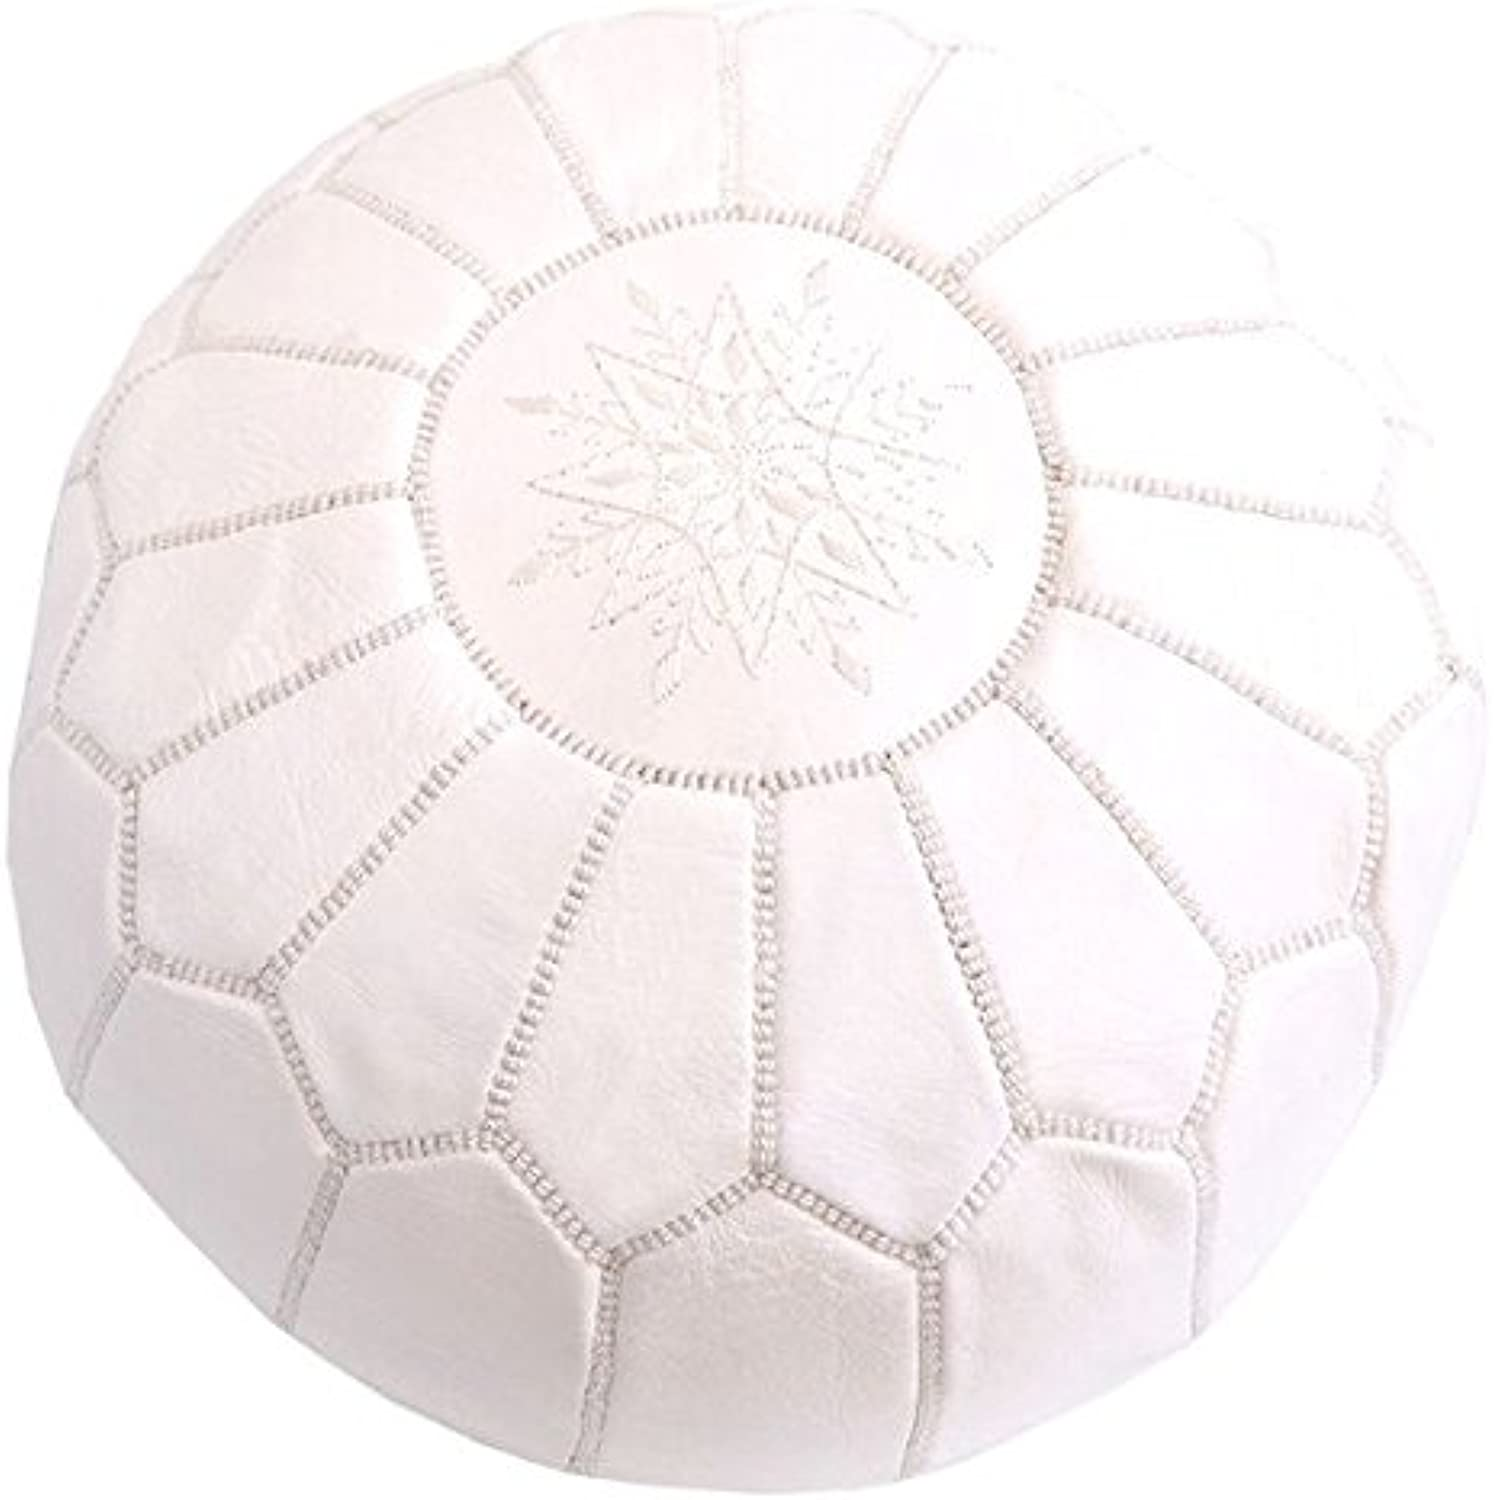 Leather Pouf with Snowflake Embroidery - White